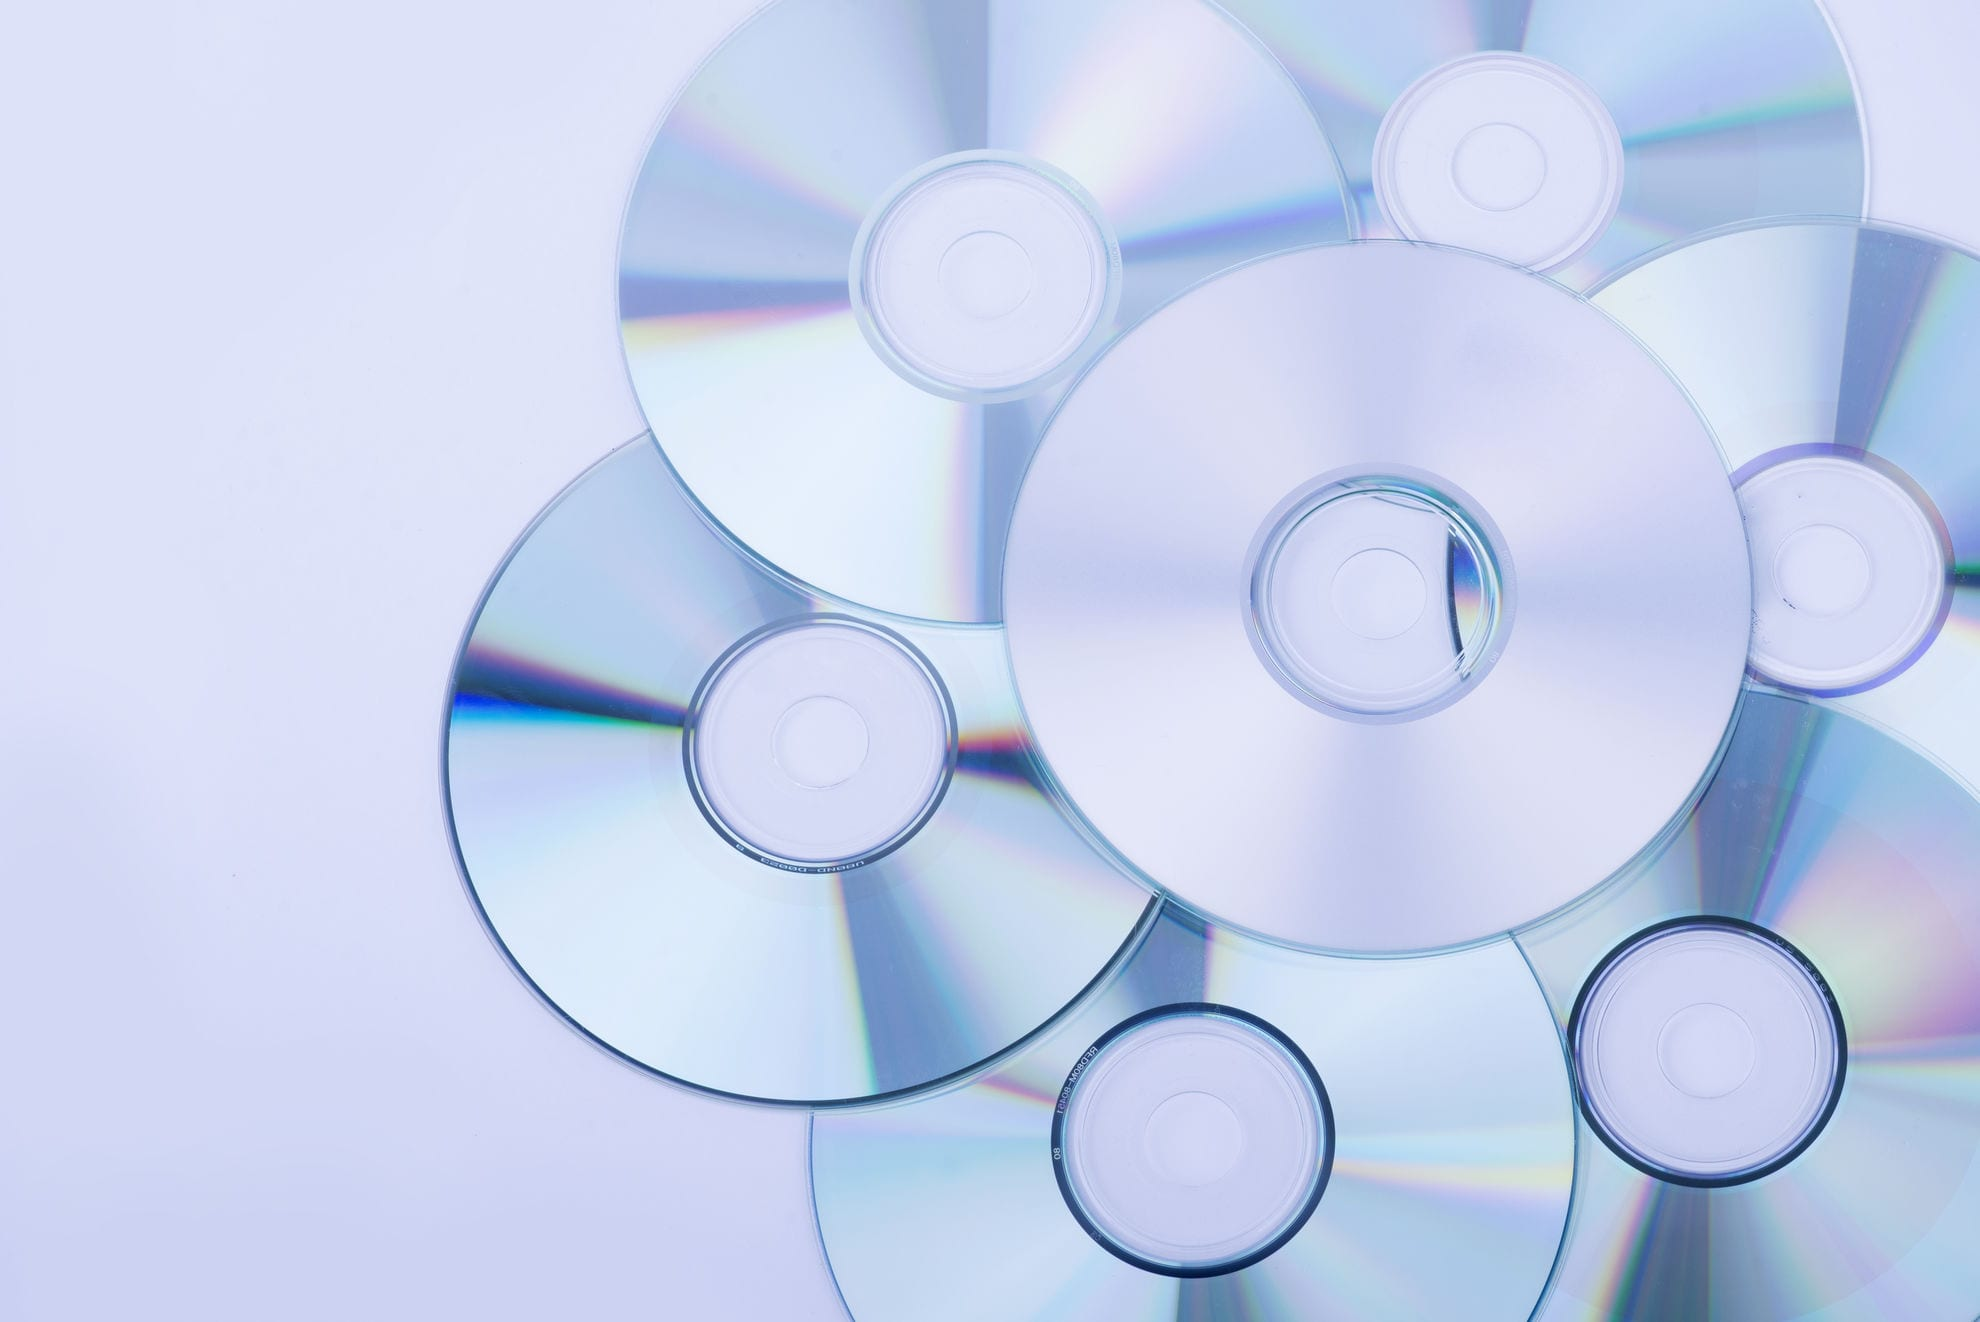 Optical disc materials